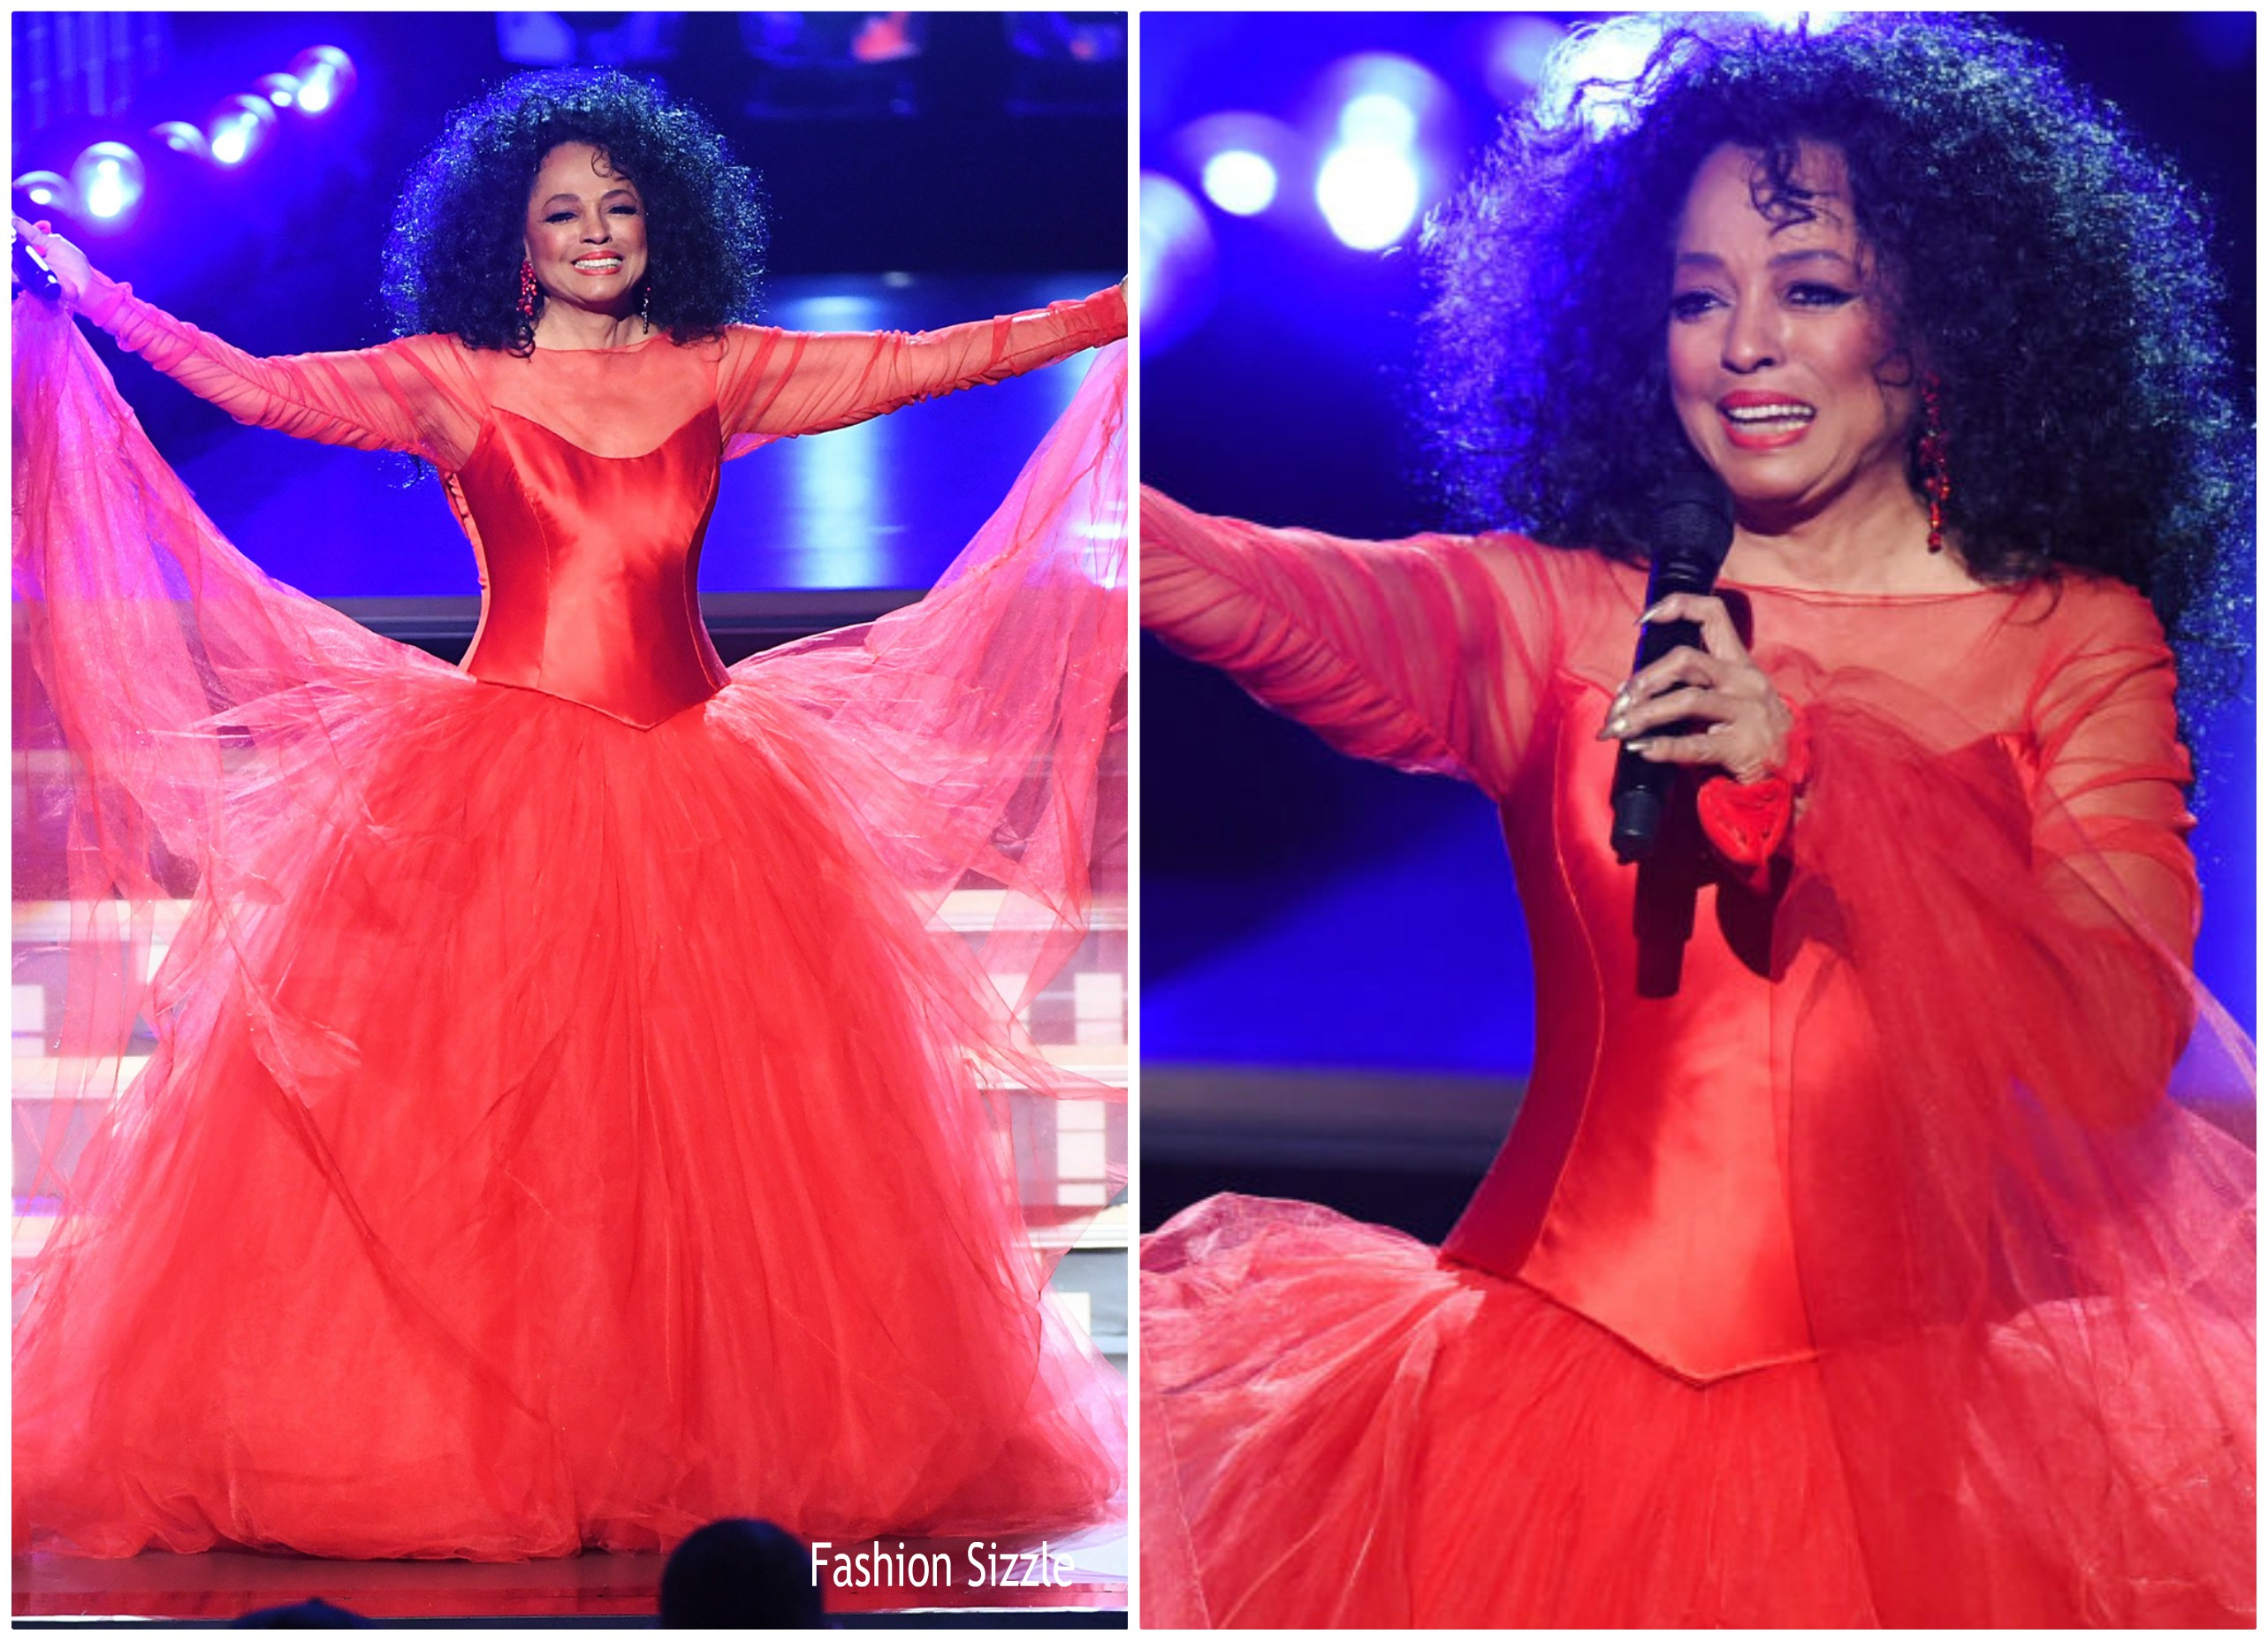 diana-ross-celebrates-her-75th-birthday-grammys-with-performance